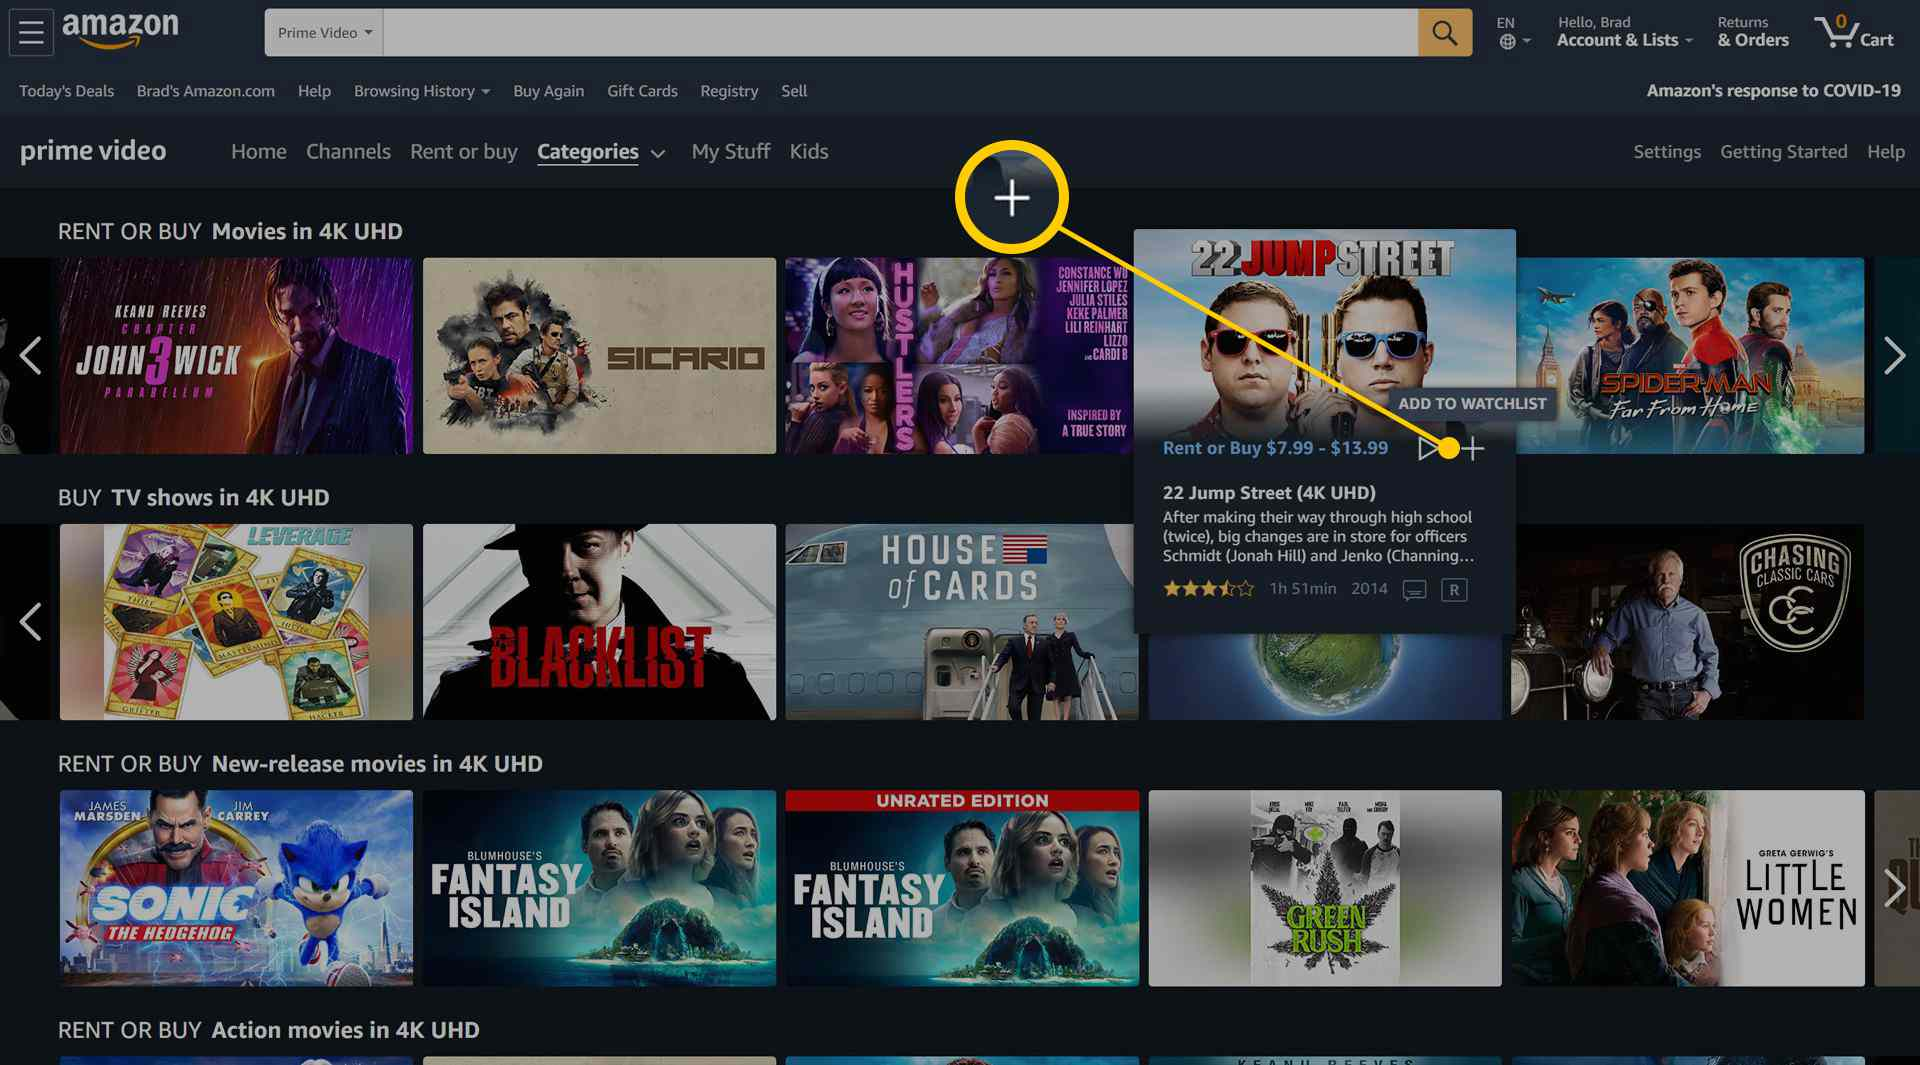 Amazon Prime Video 4K Movies and TV Shows category web page.